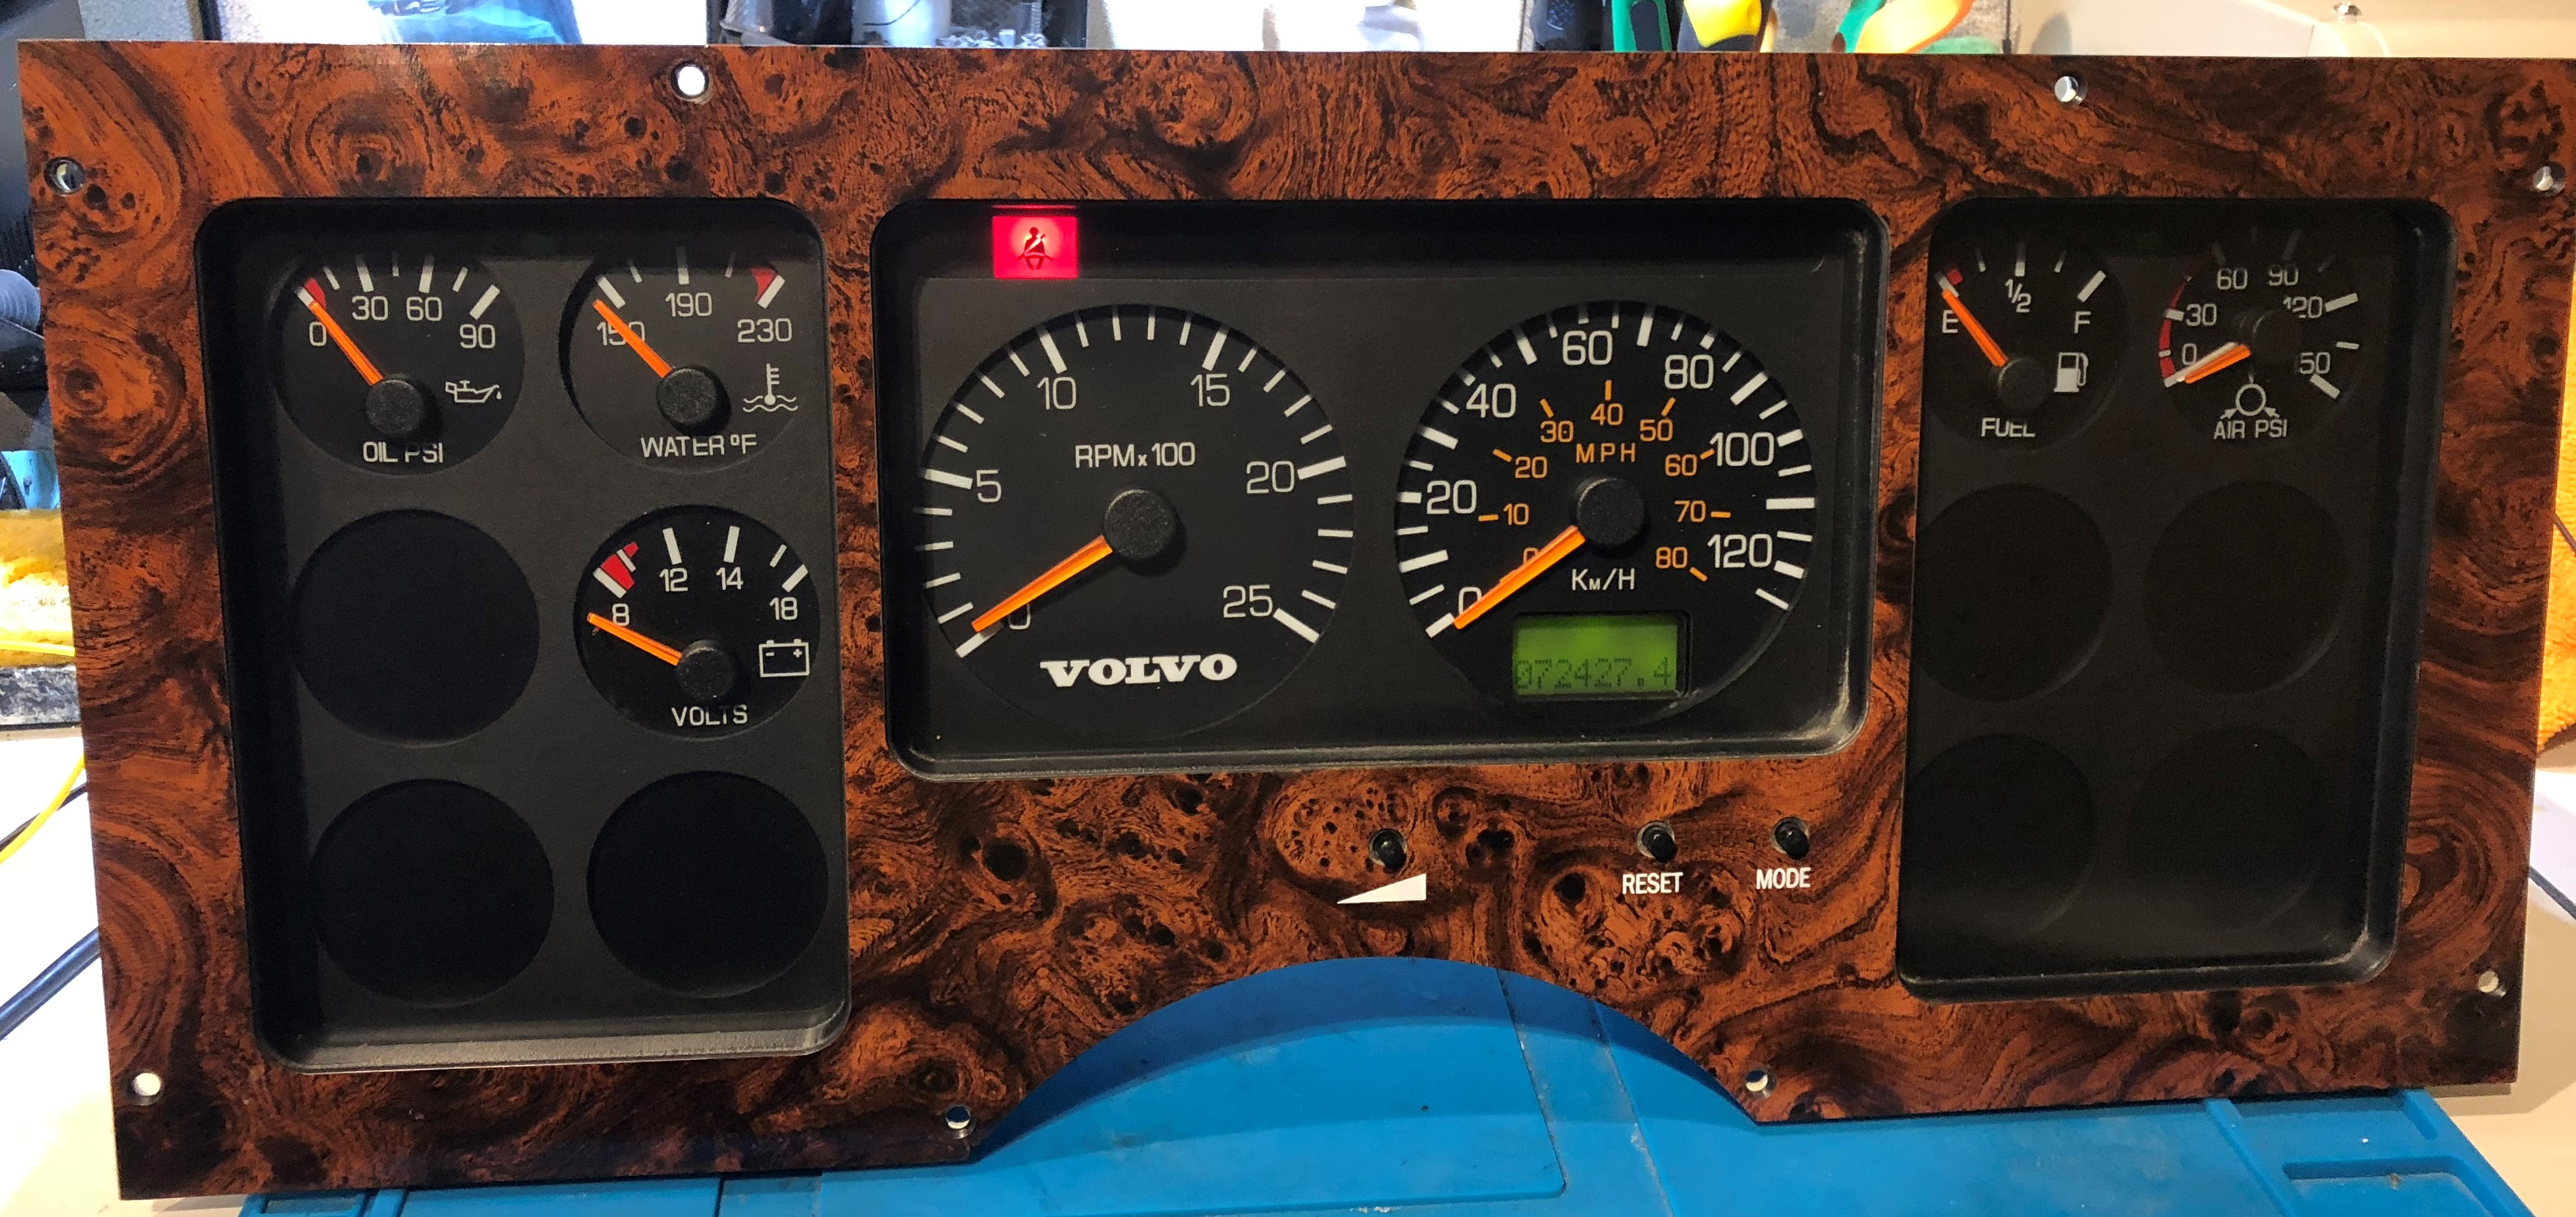 1994-1995 VOLVO WIA USED DASHBOARD INSTRUMENT CLUSTER FOR SALE (KM/H)